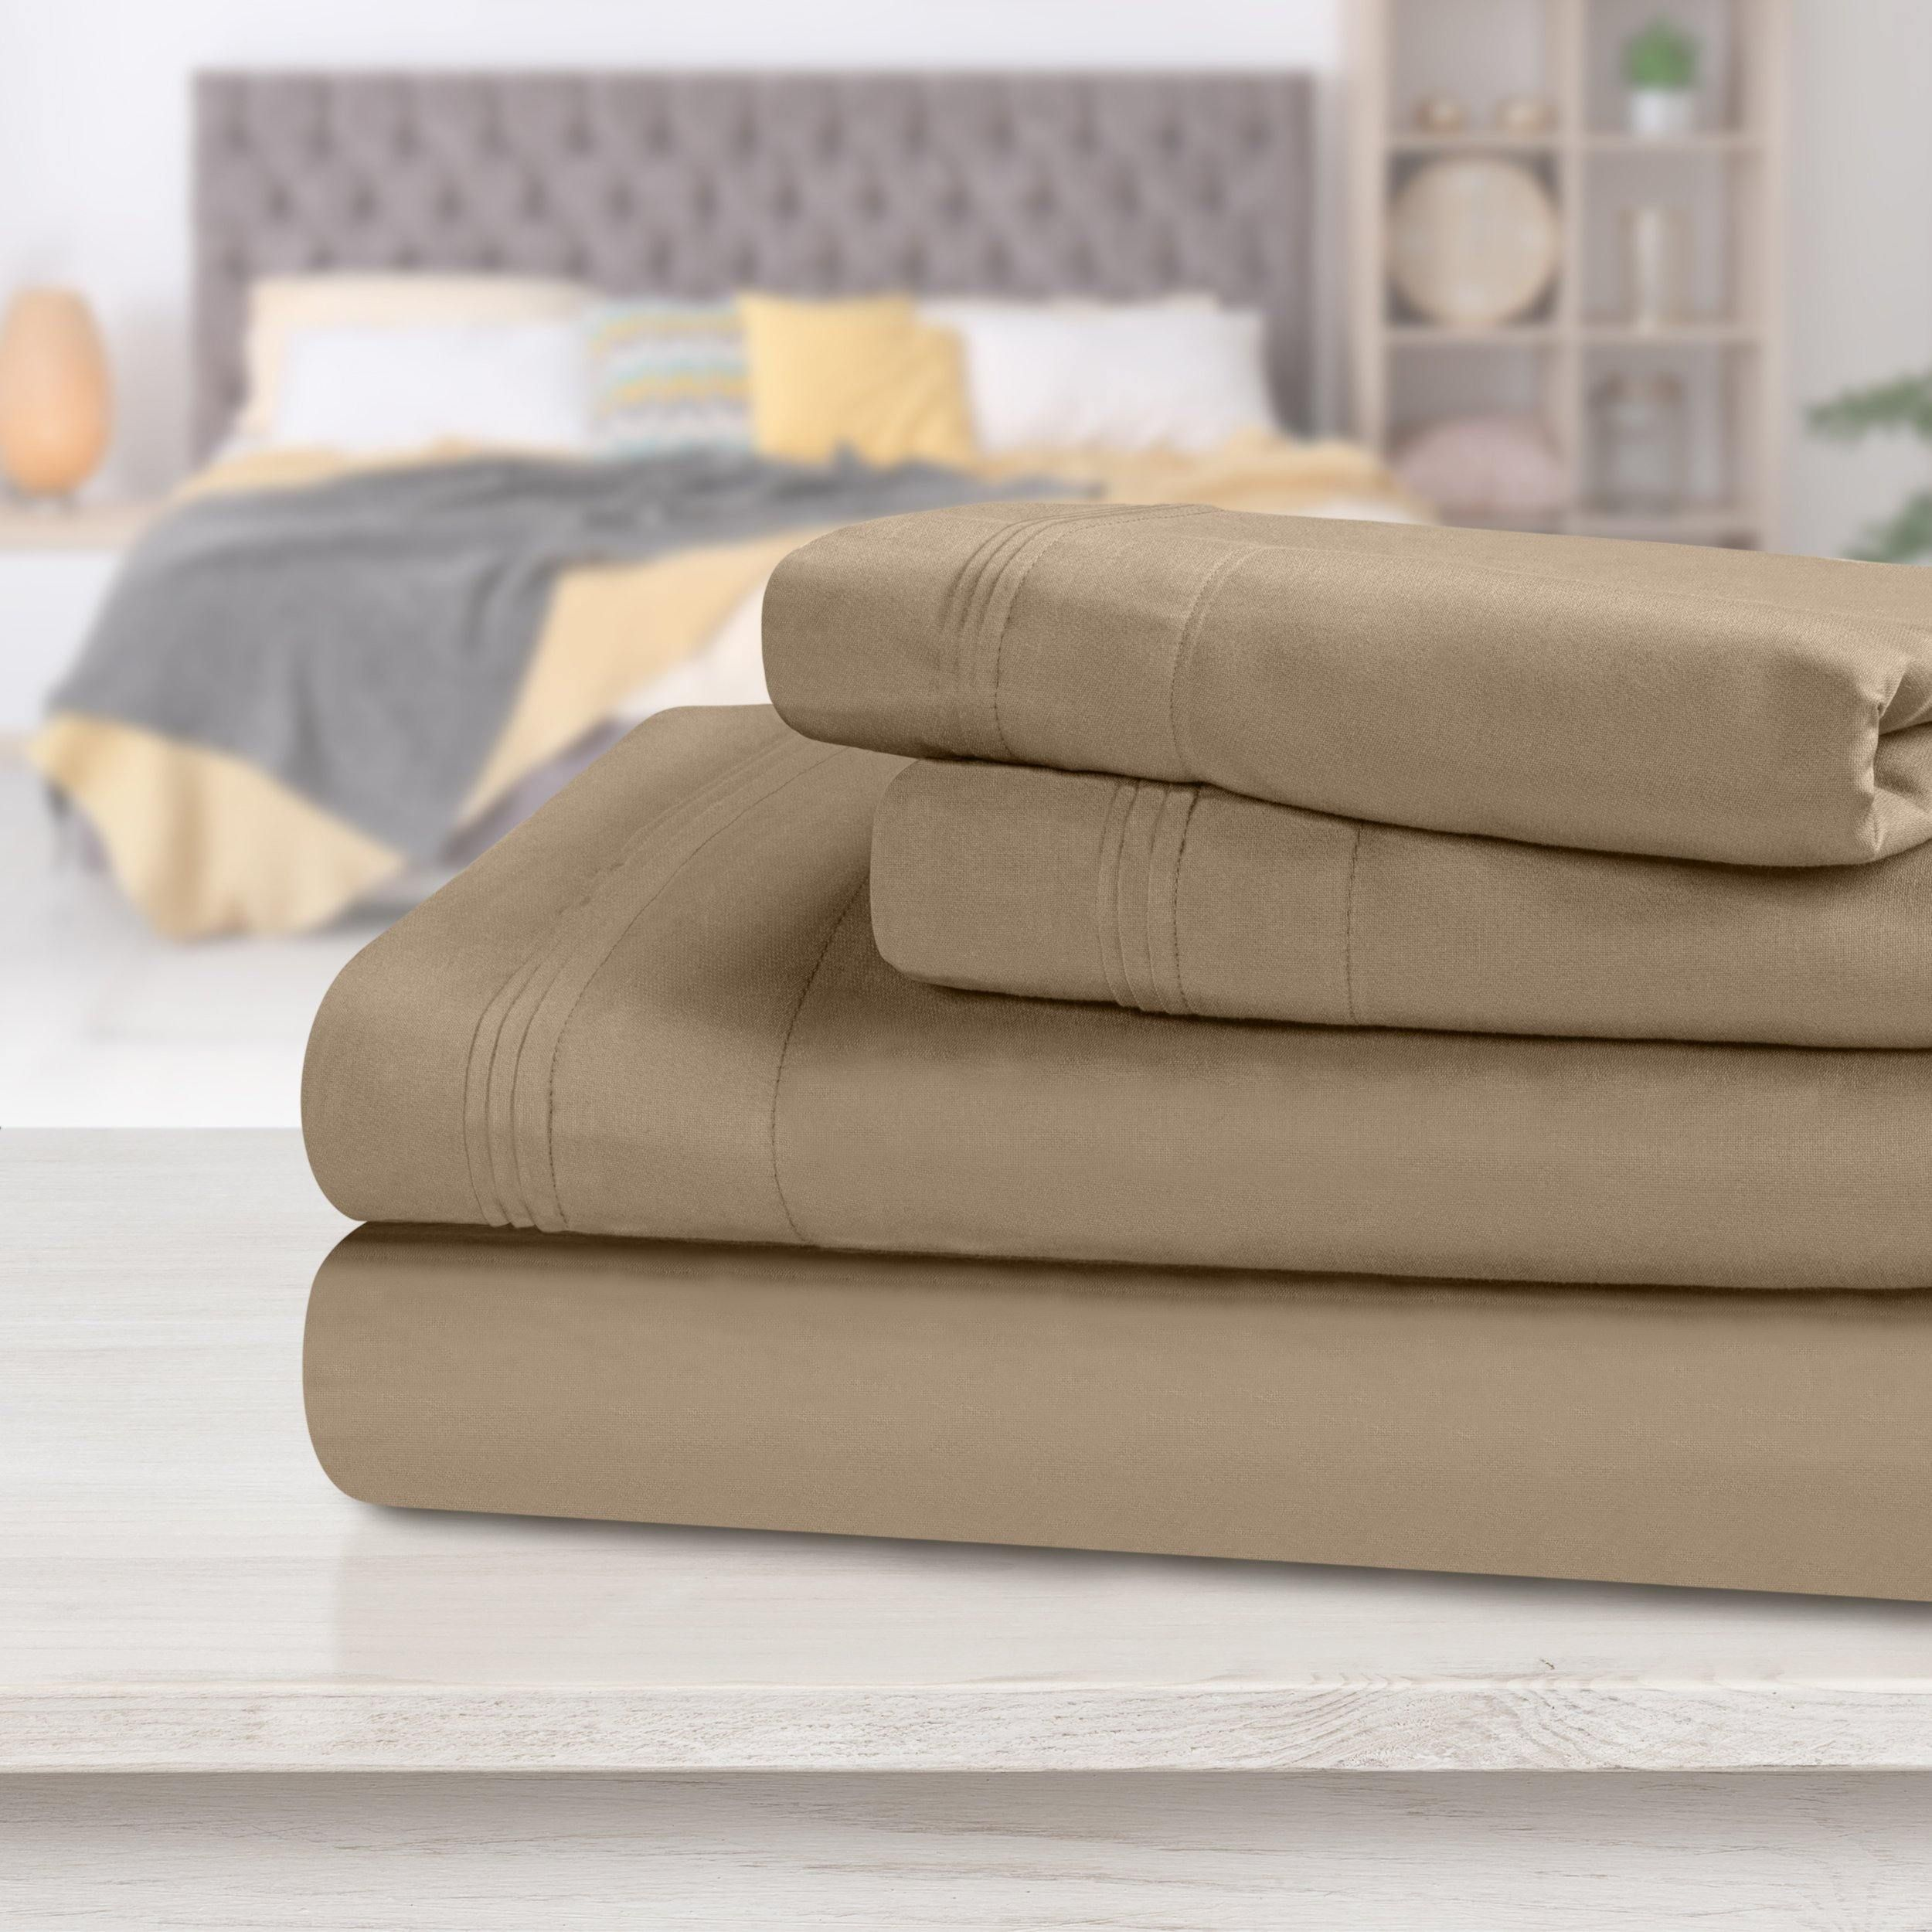 1000 Thread Count 100 Egyptian Cotton Solid Sheet Set In 2021 Egyptian Cotton Sheets Deep Pocket Sheets Cotton Sheet Sets 1000 thread count egyptian cotton